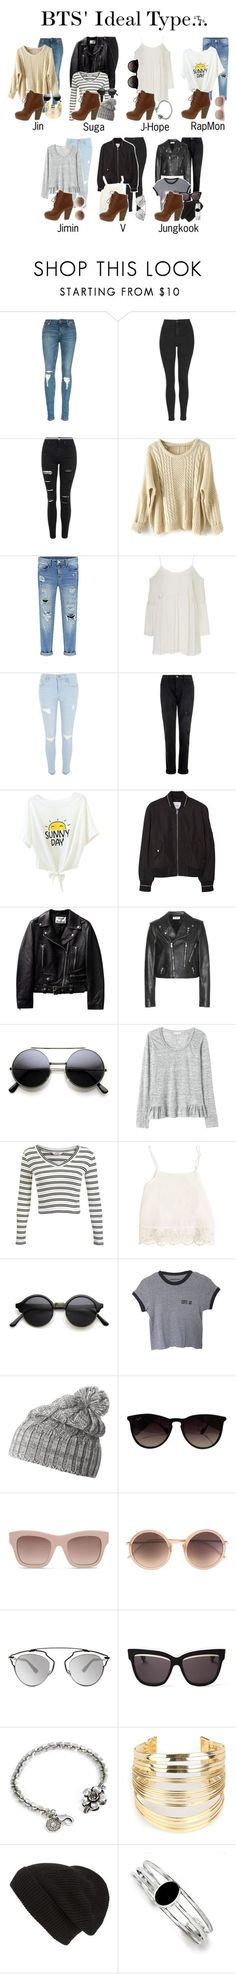 """""""BTS' ideal type wearing Whiskey Lace Up Ankle Boots"""" by triple-threat36 ❤ liked on Polyvore featuring Topshop, River Island, Current/Elliott, MANGO, Yves Saint Laurent, Rebecca Taylor, Miss Selfridge, Swell, Helly Hansen and Ray-Ban"""